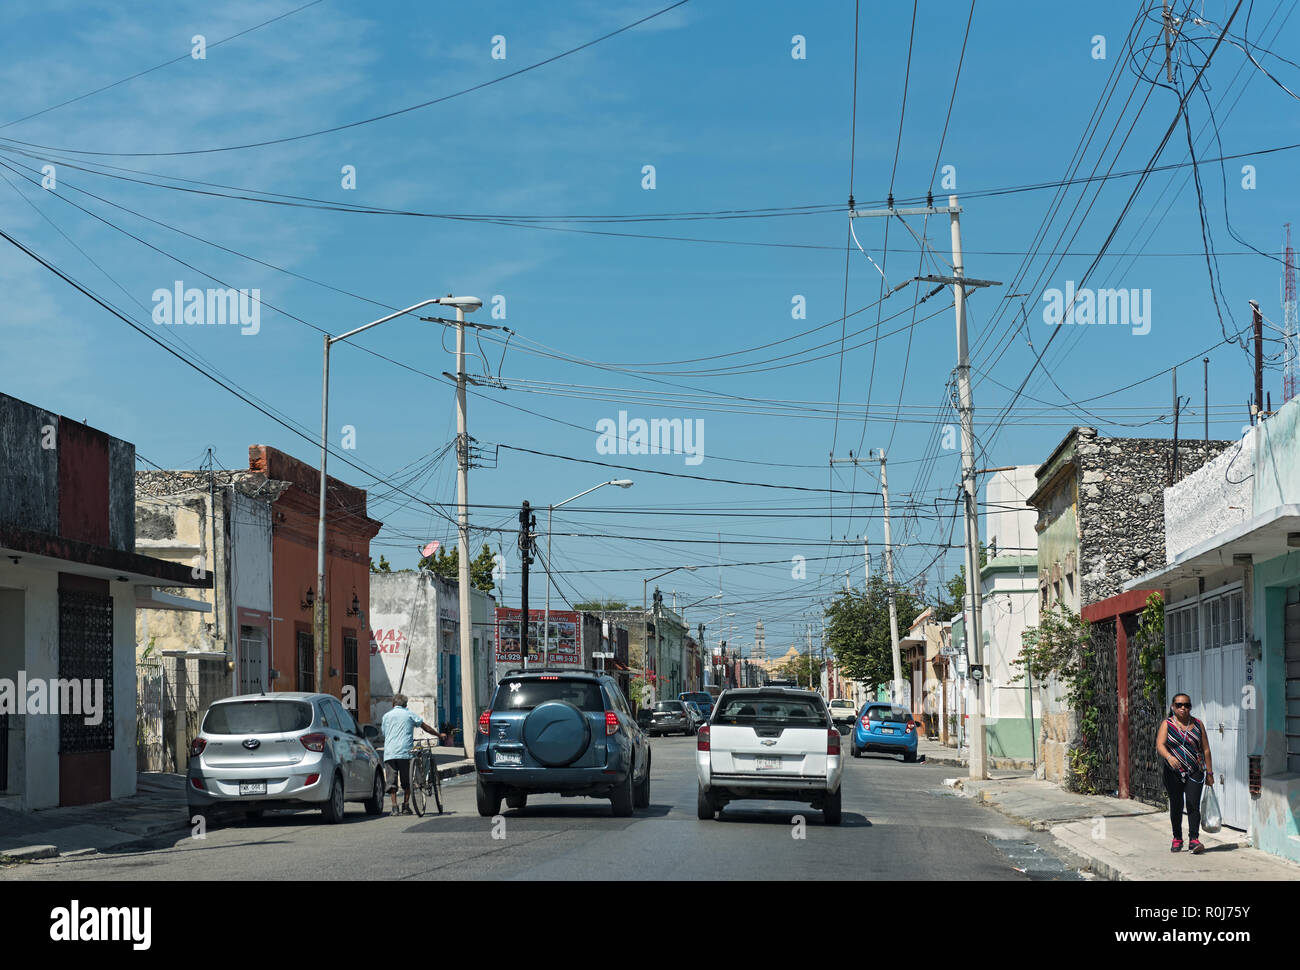 street with houses and shops in downtown merida, mexico. - Stock Image